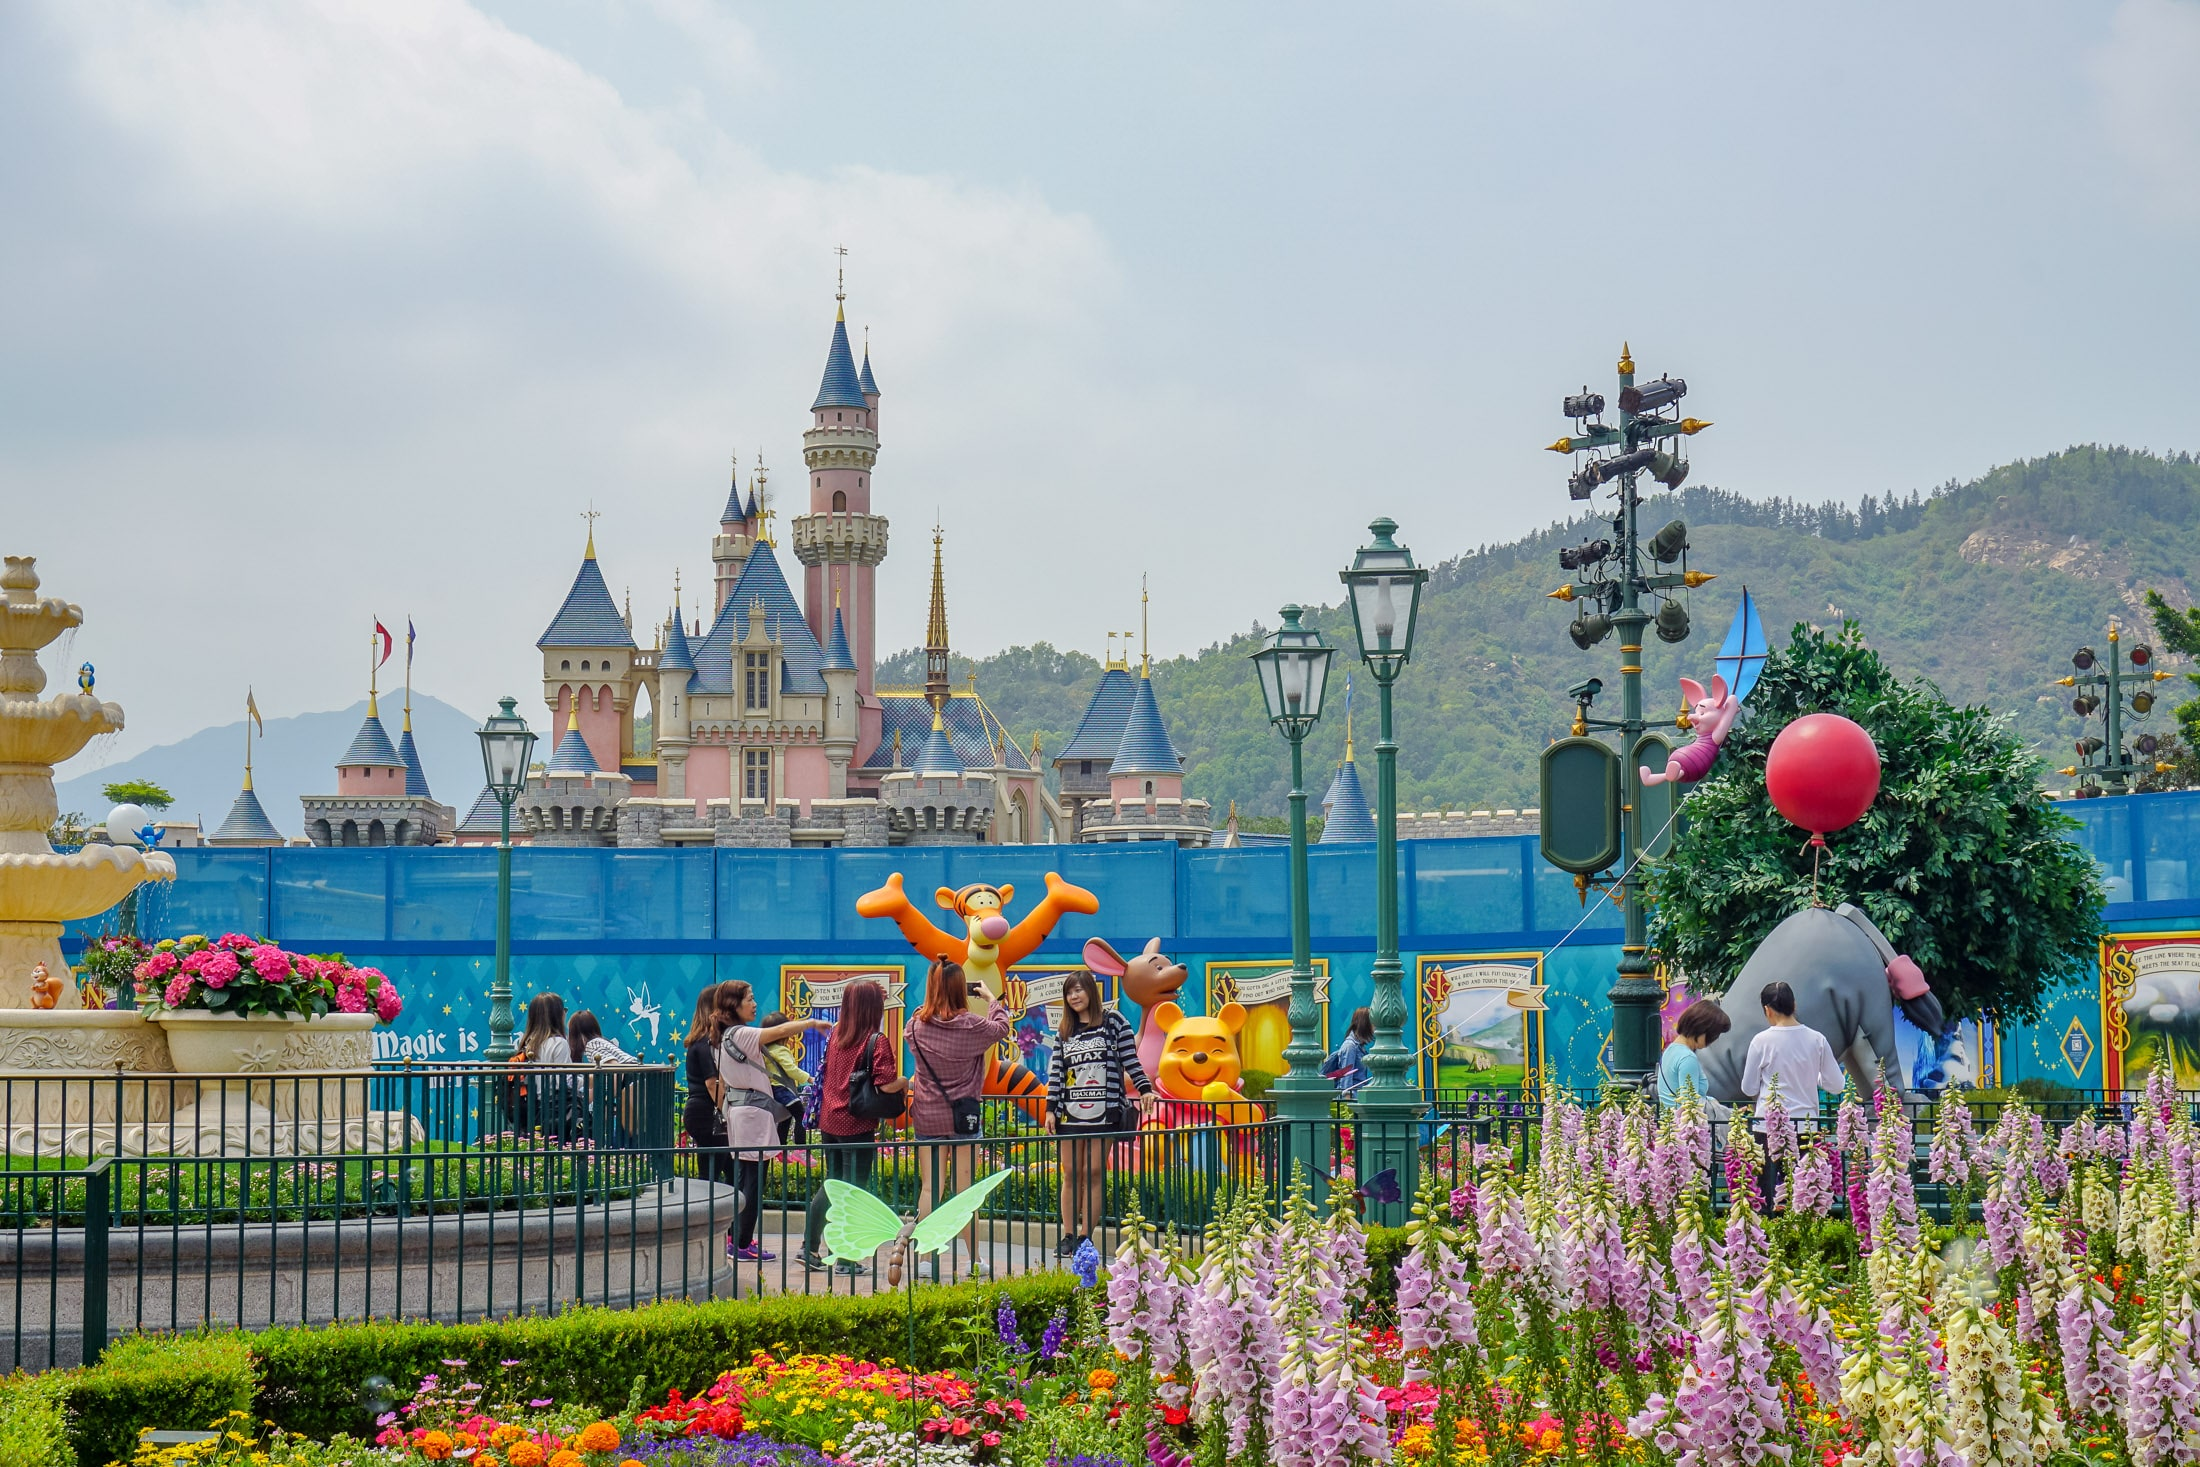 Hong Kong Disneyland castle renovation